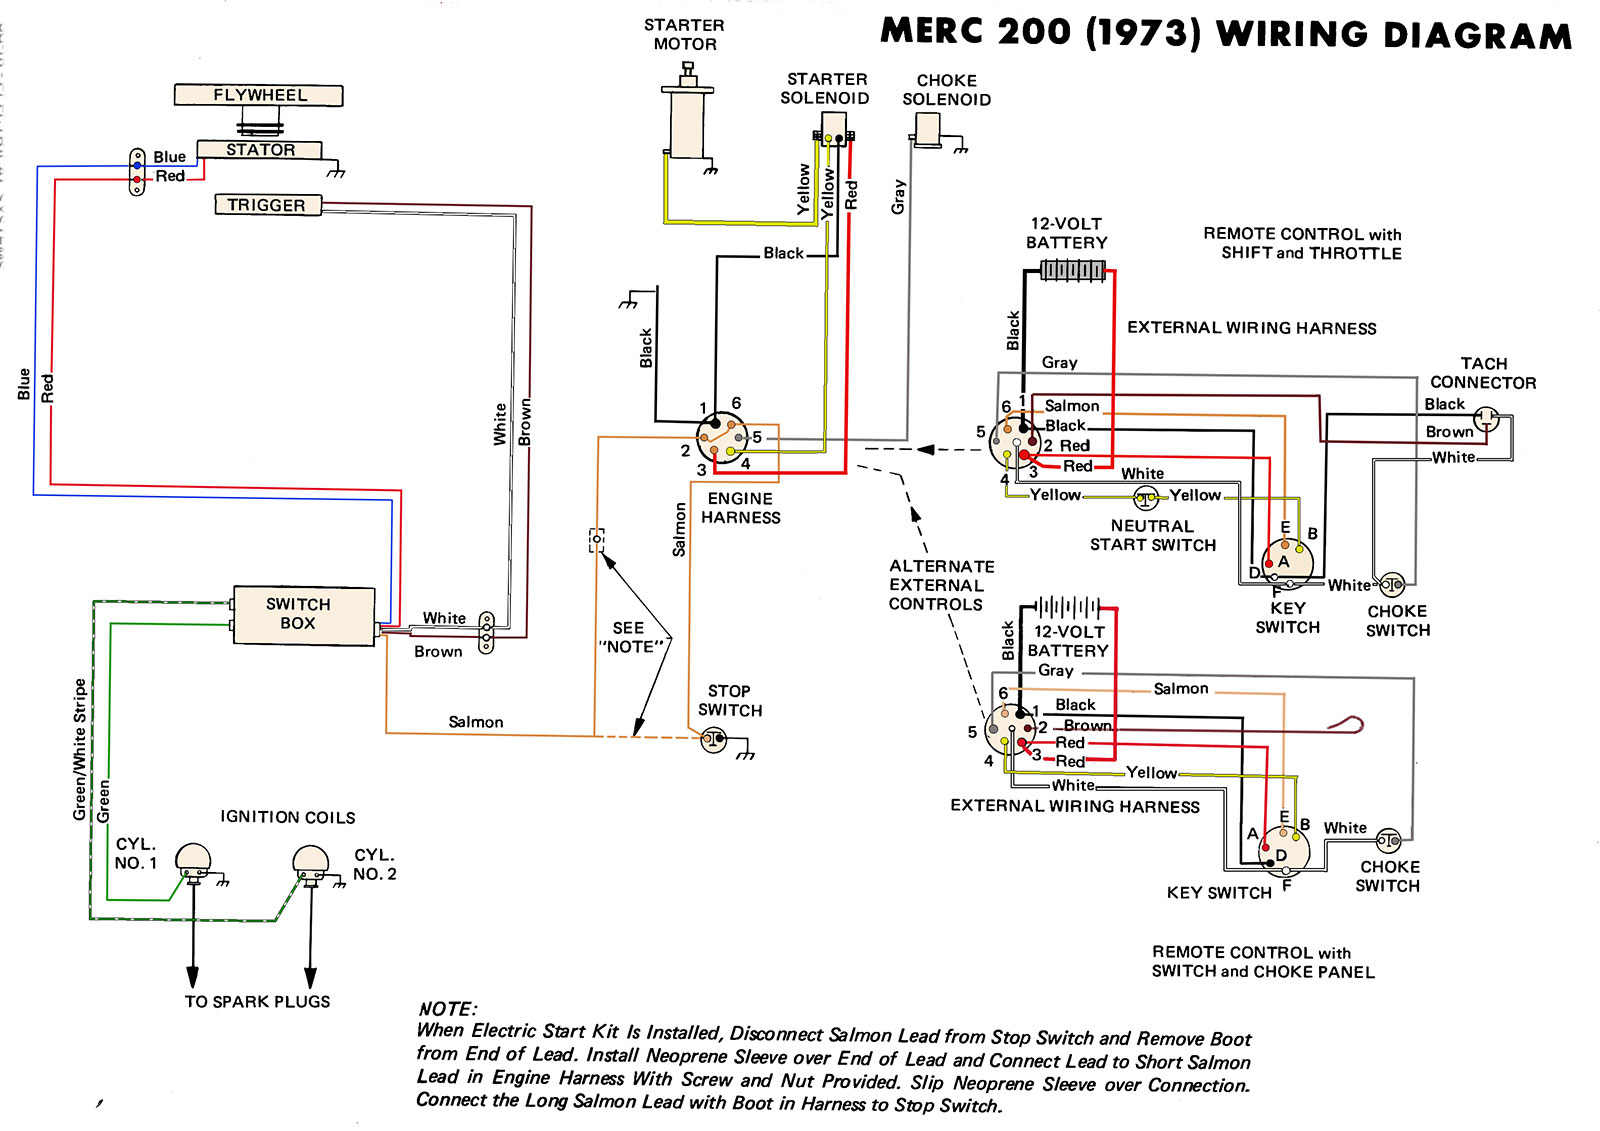 mercury outboard wiring diagrams mastertech marin mariner 75 hp outboard wiring diagram mariner 60 hp outboard wiring diagram